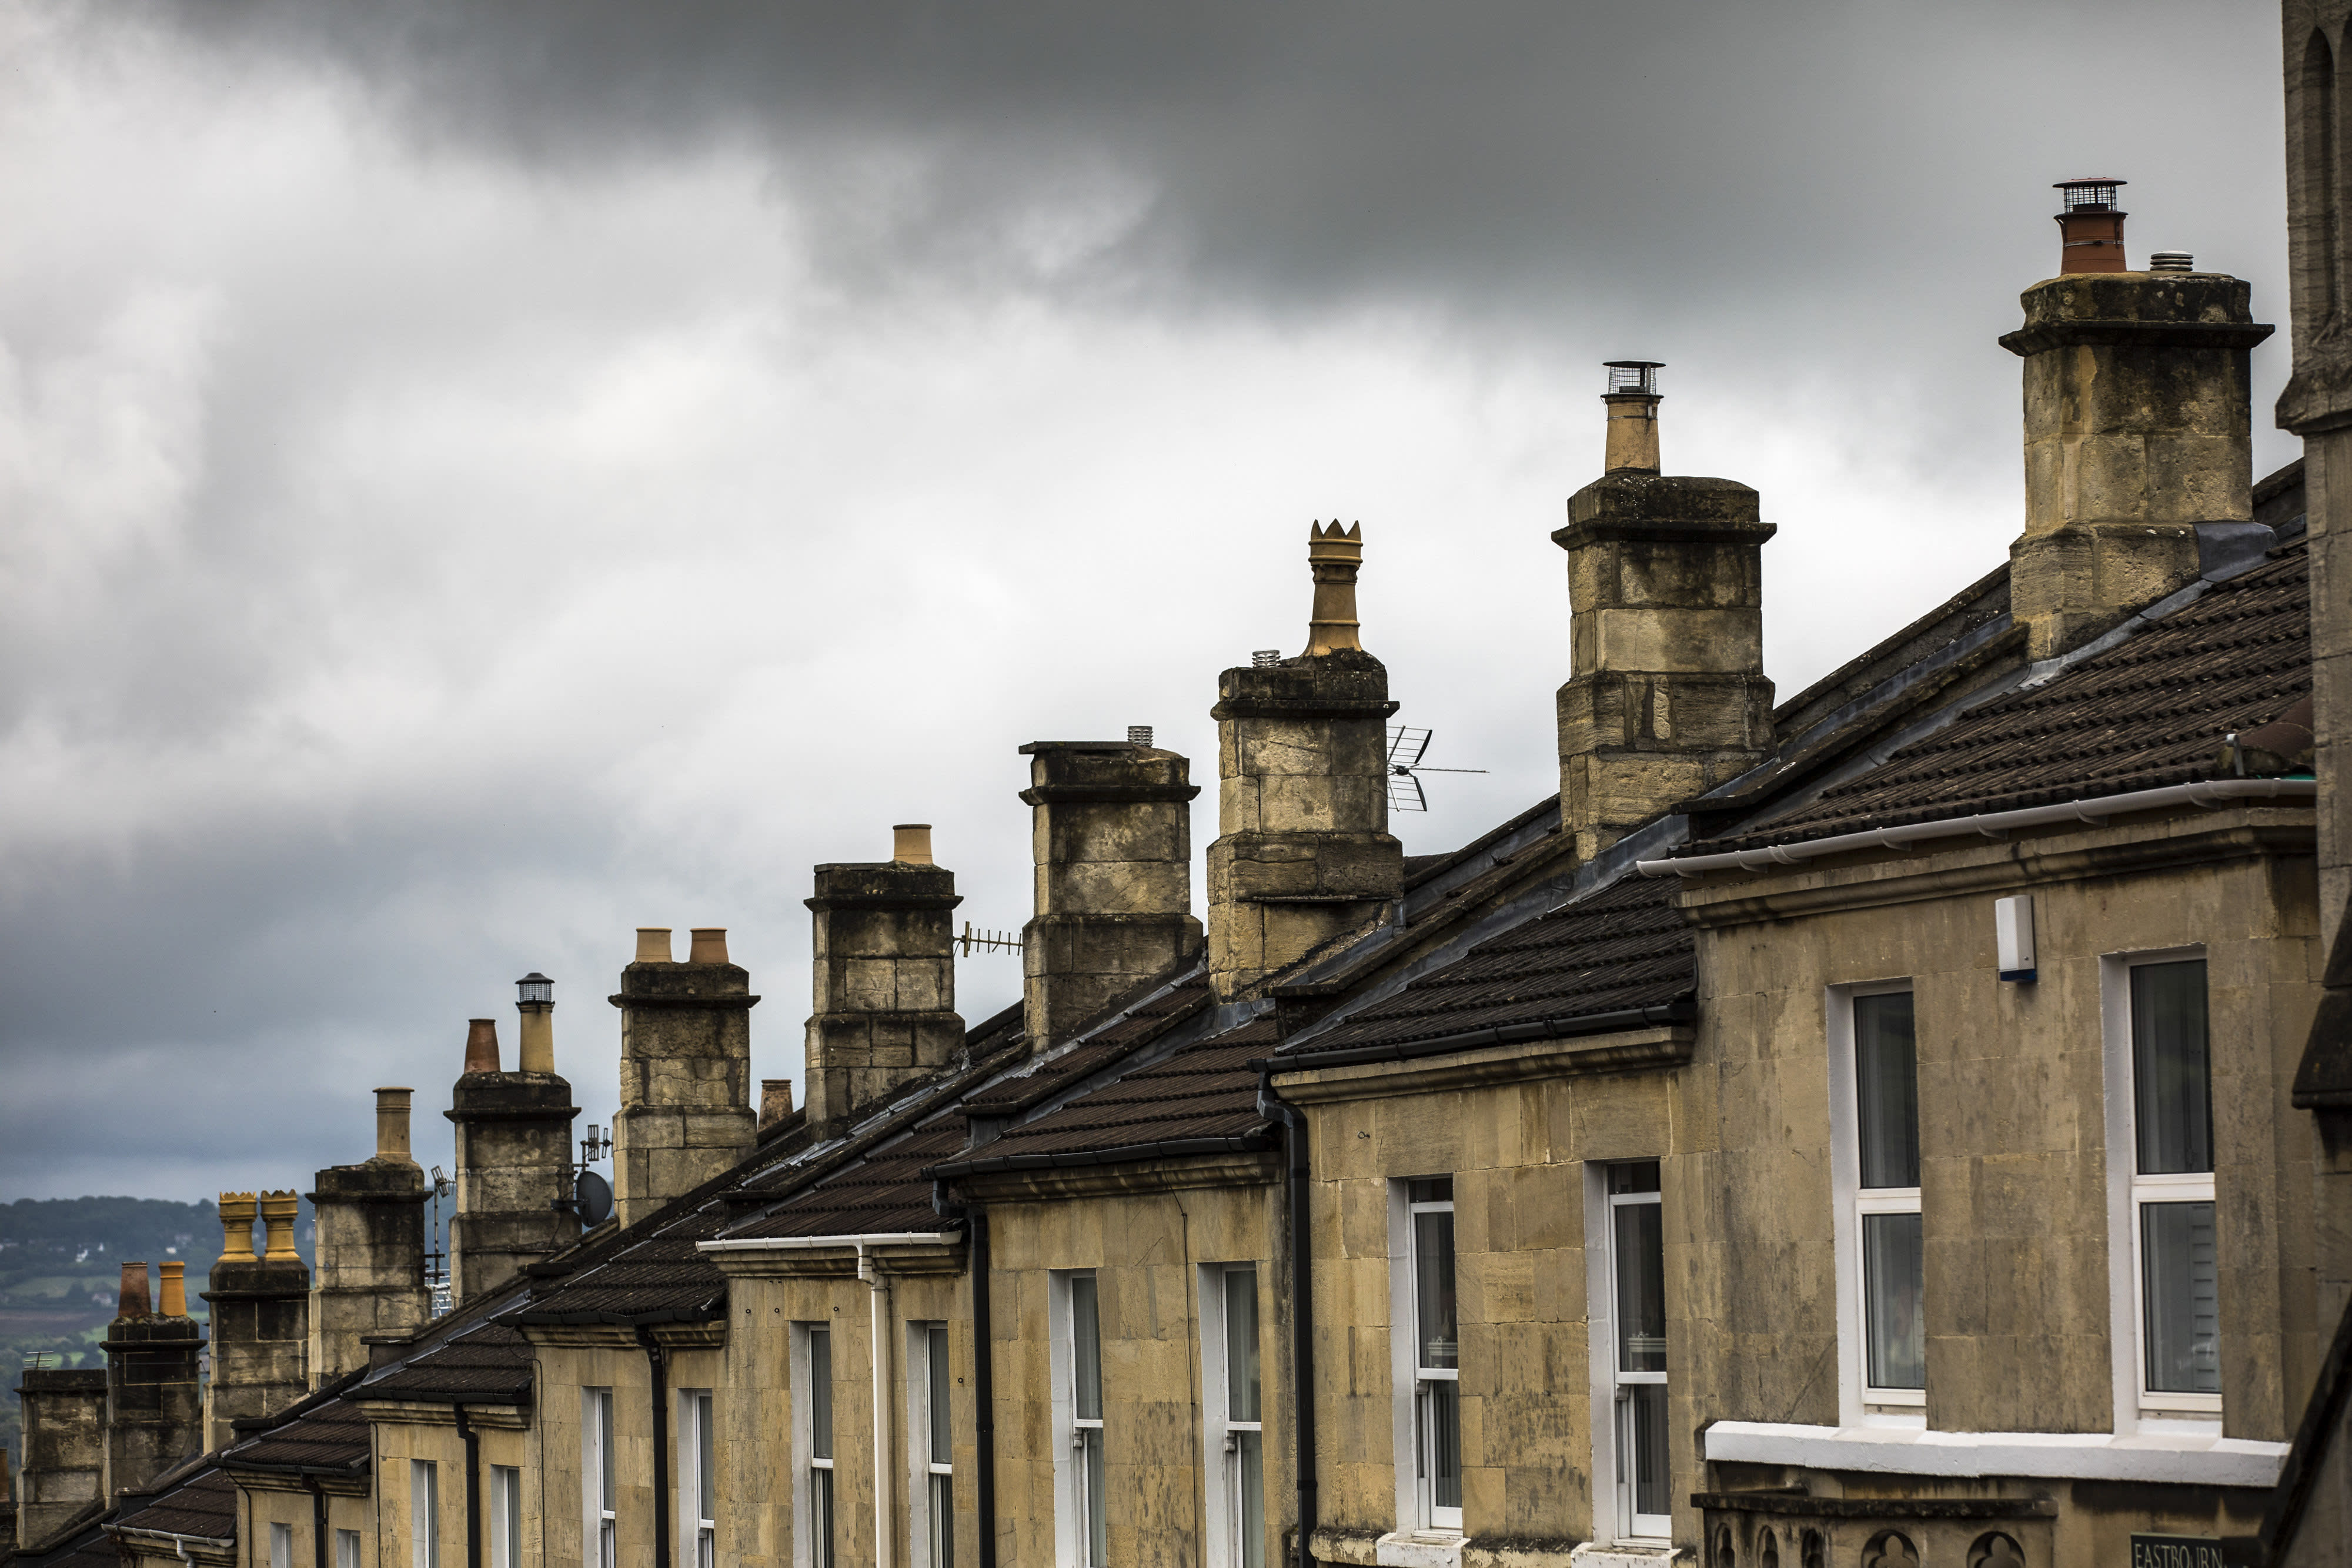 Lenders withdraw 90% LTV mortgages amid 'high demand'